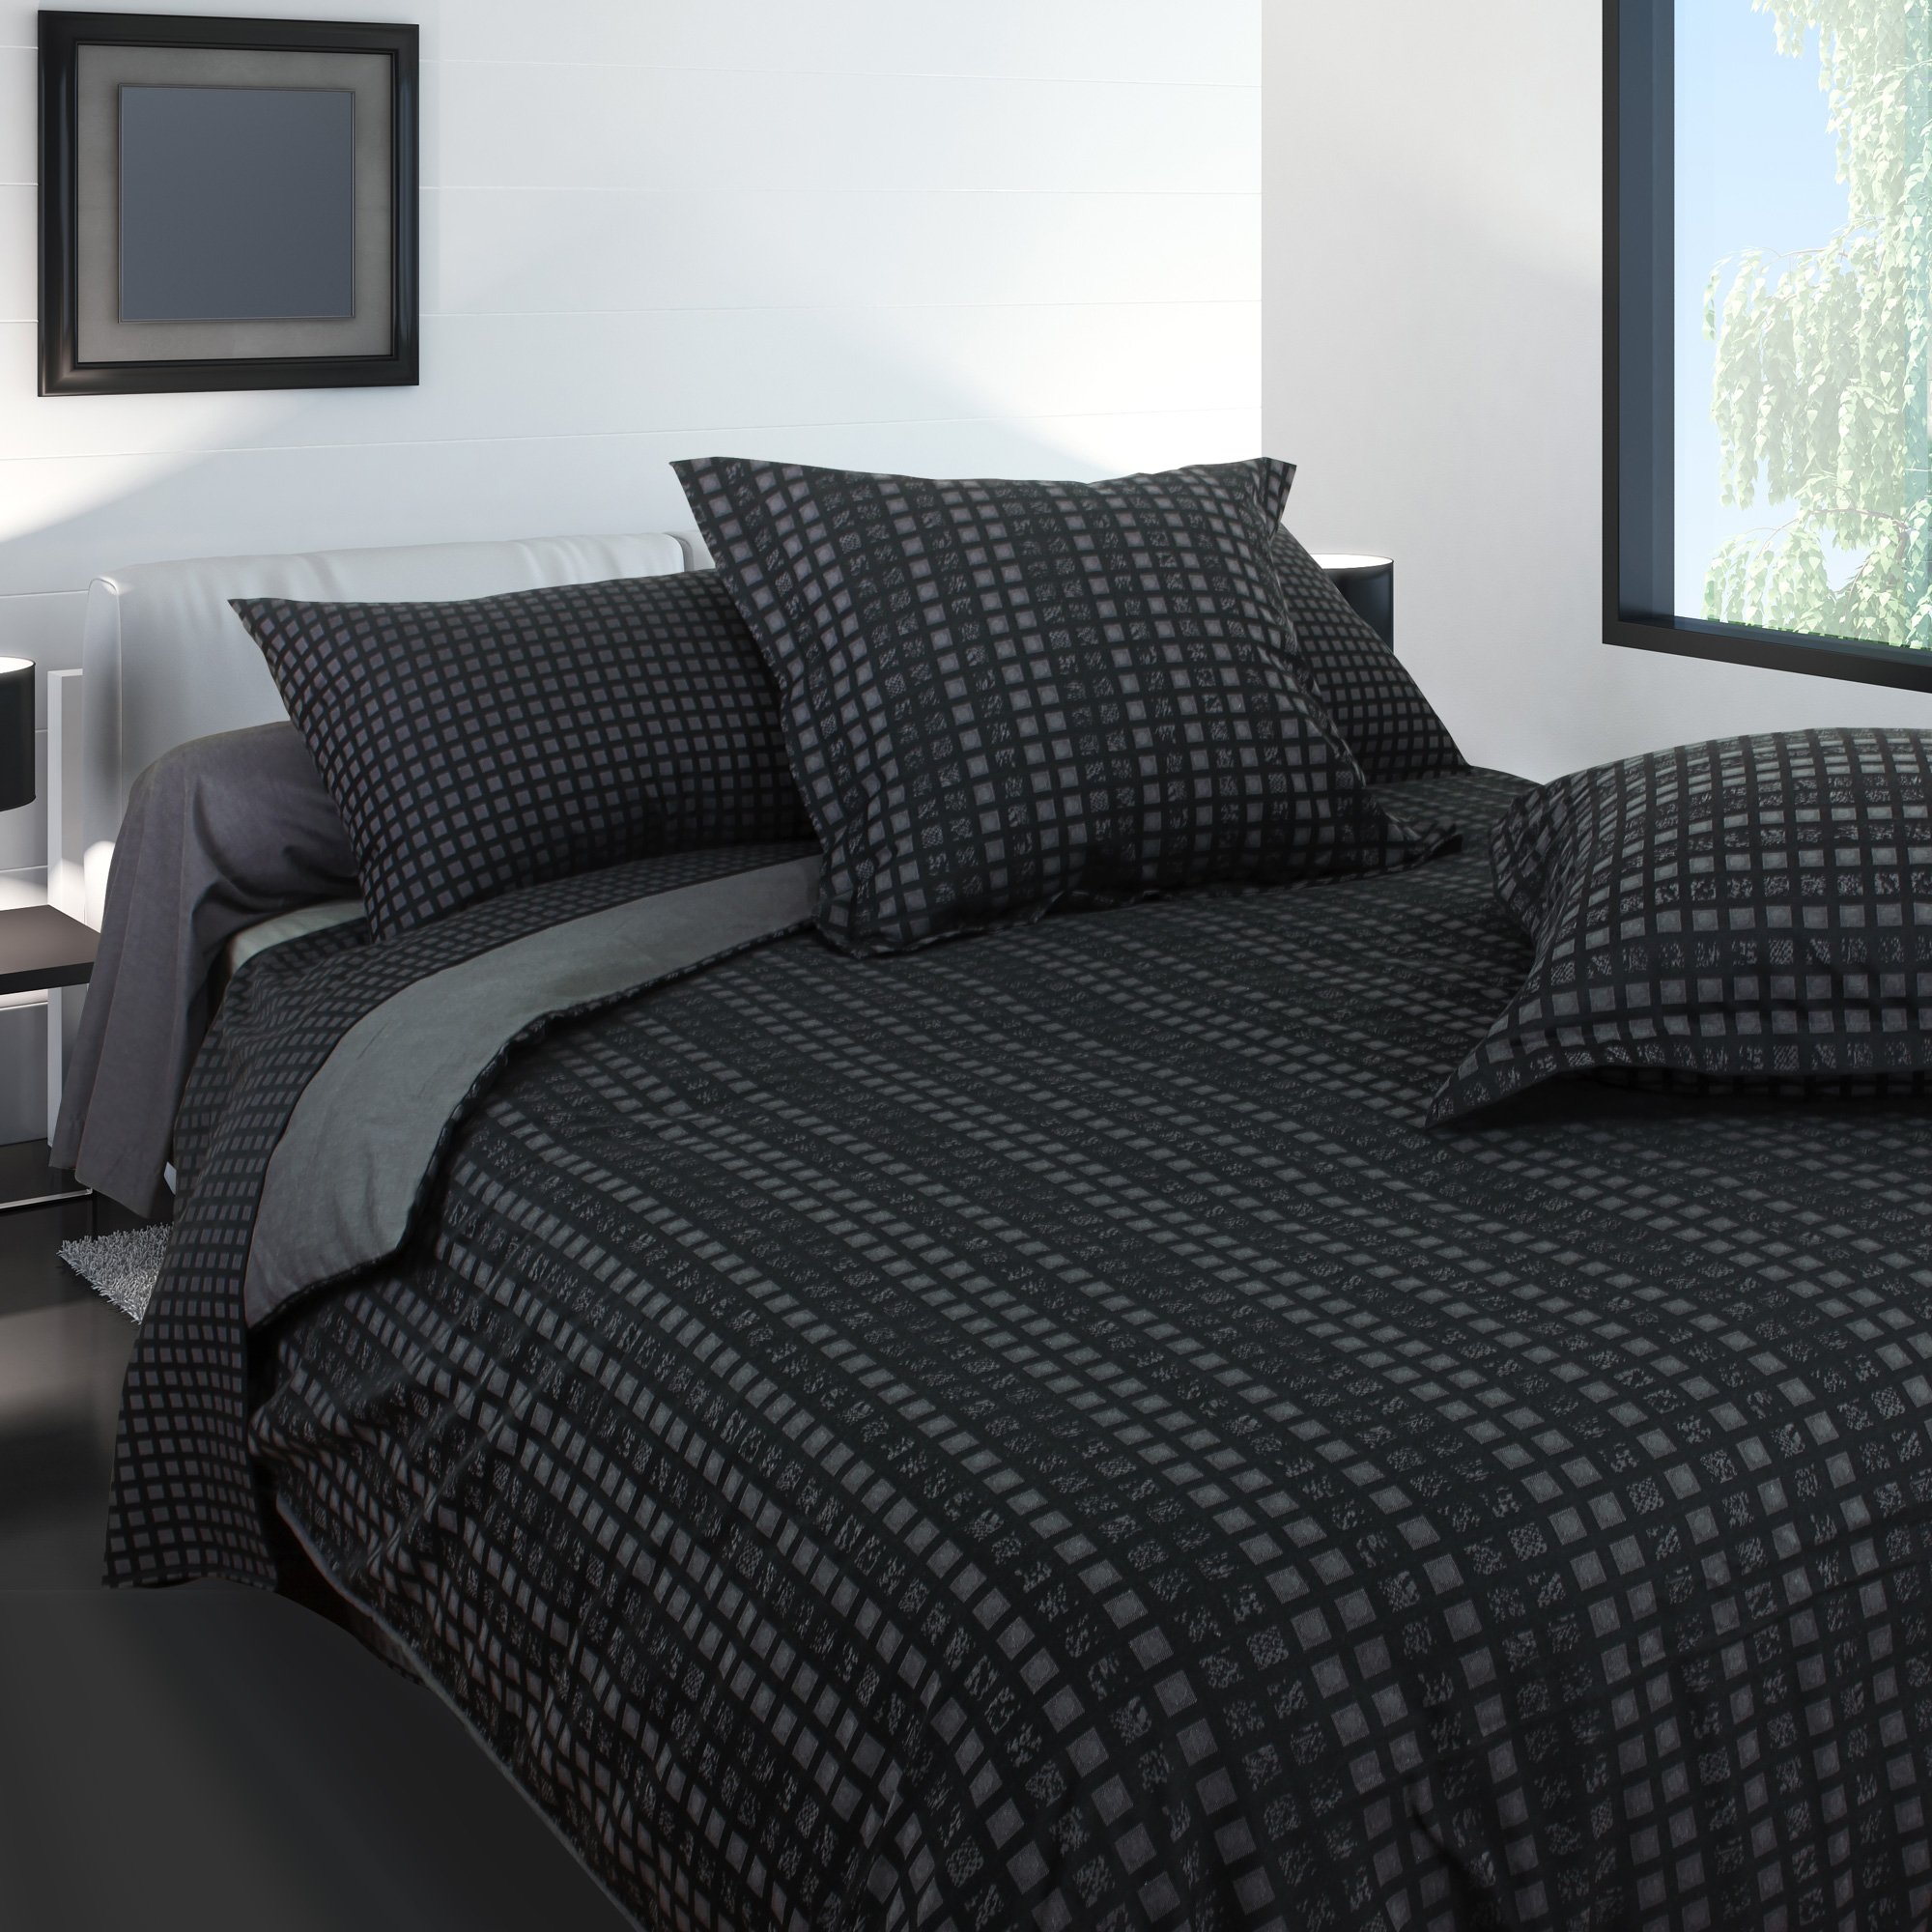 parure de lit 260x240 satin de coton trocadero gris anthracite ebay. Black Bedroom Furniture Sets. Home Design Ideas